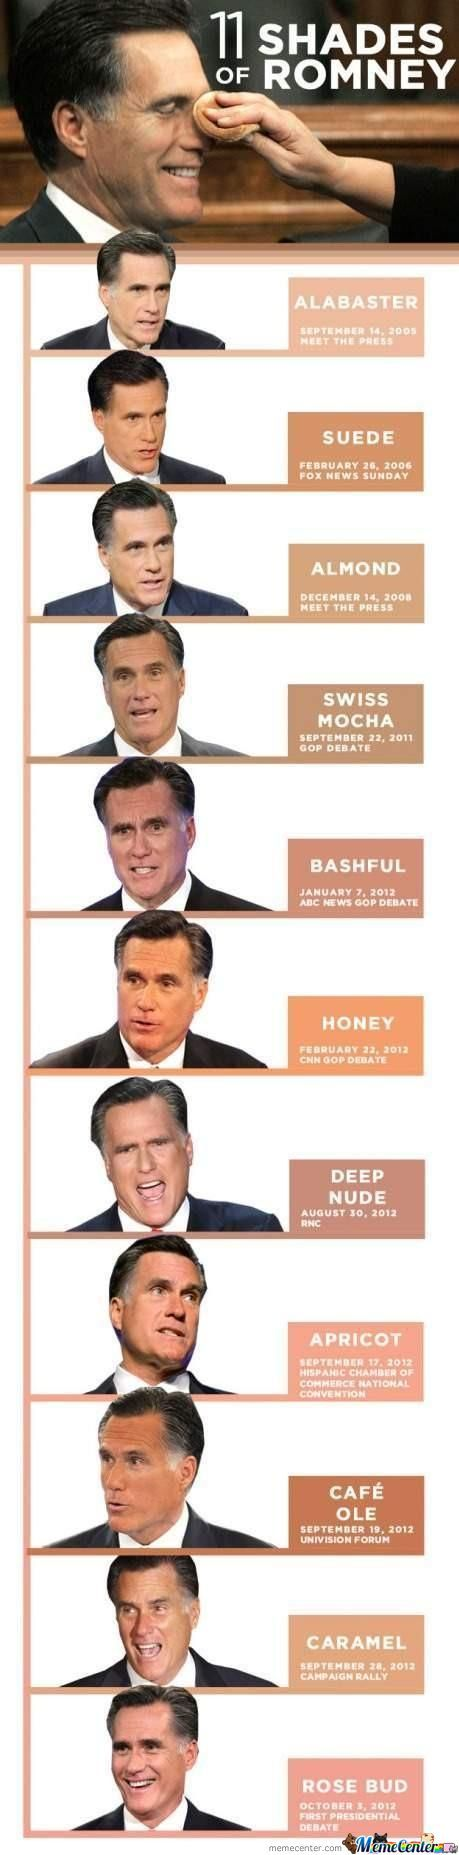 11 Shades Of Romney (Make-Up)